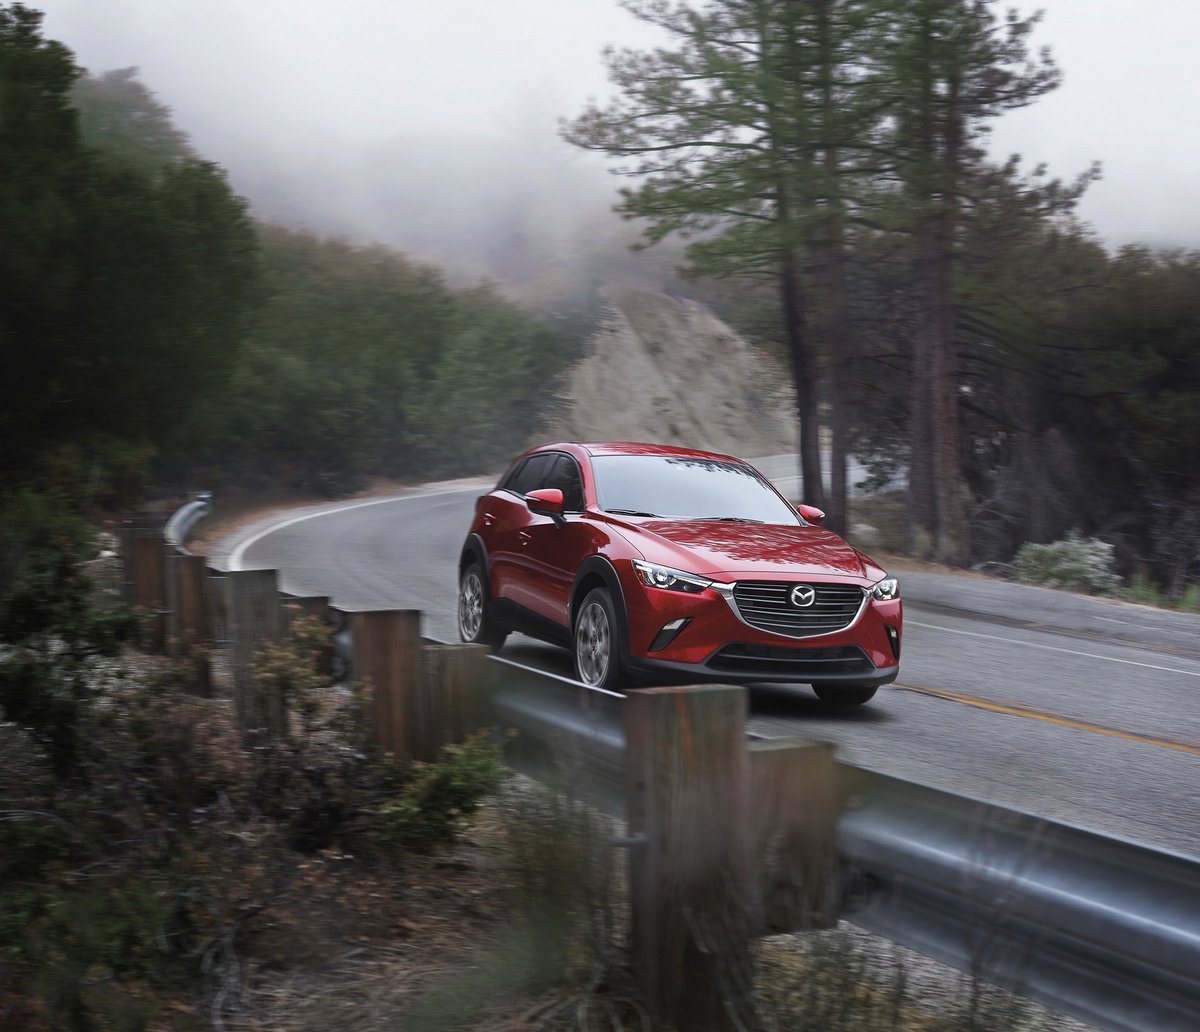 cole marzen on twitter the mazda cx 3 will come standard with the company s iactivsense suite of safety and driver assistance tech for the 2021my additionally the crossover will arrive in u s dealers twitter